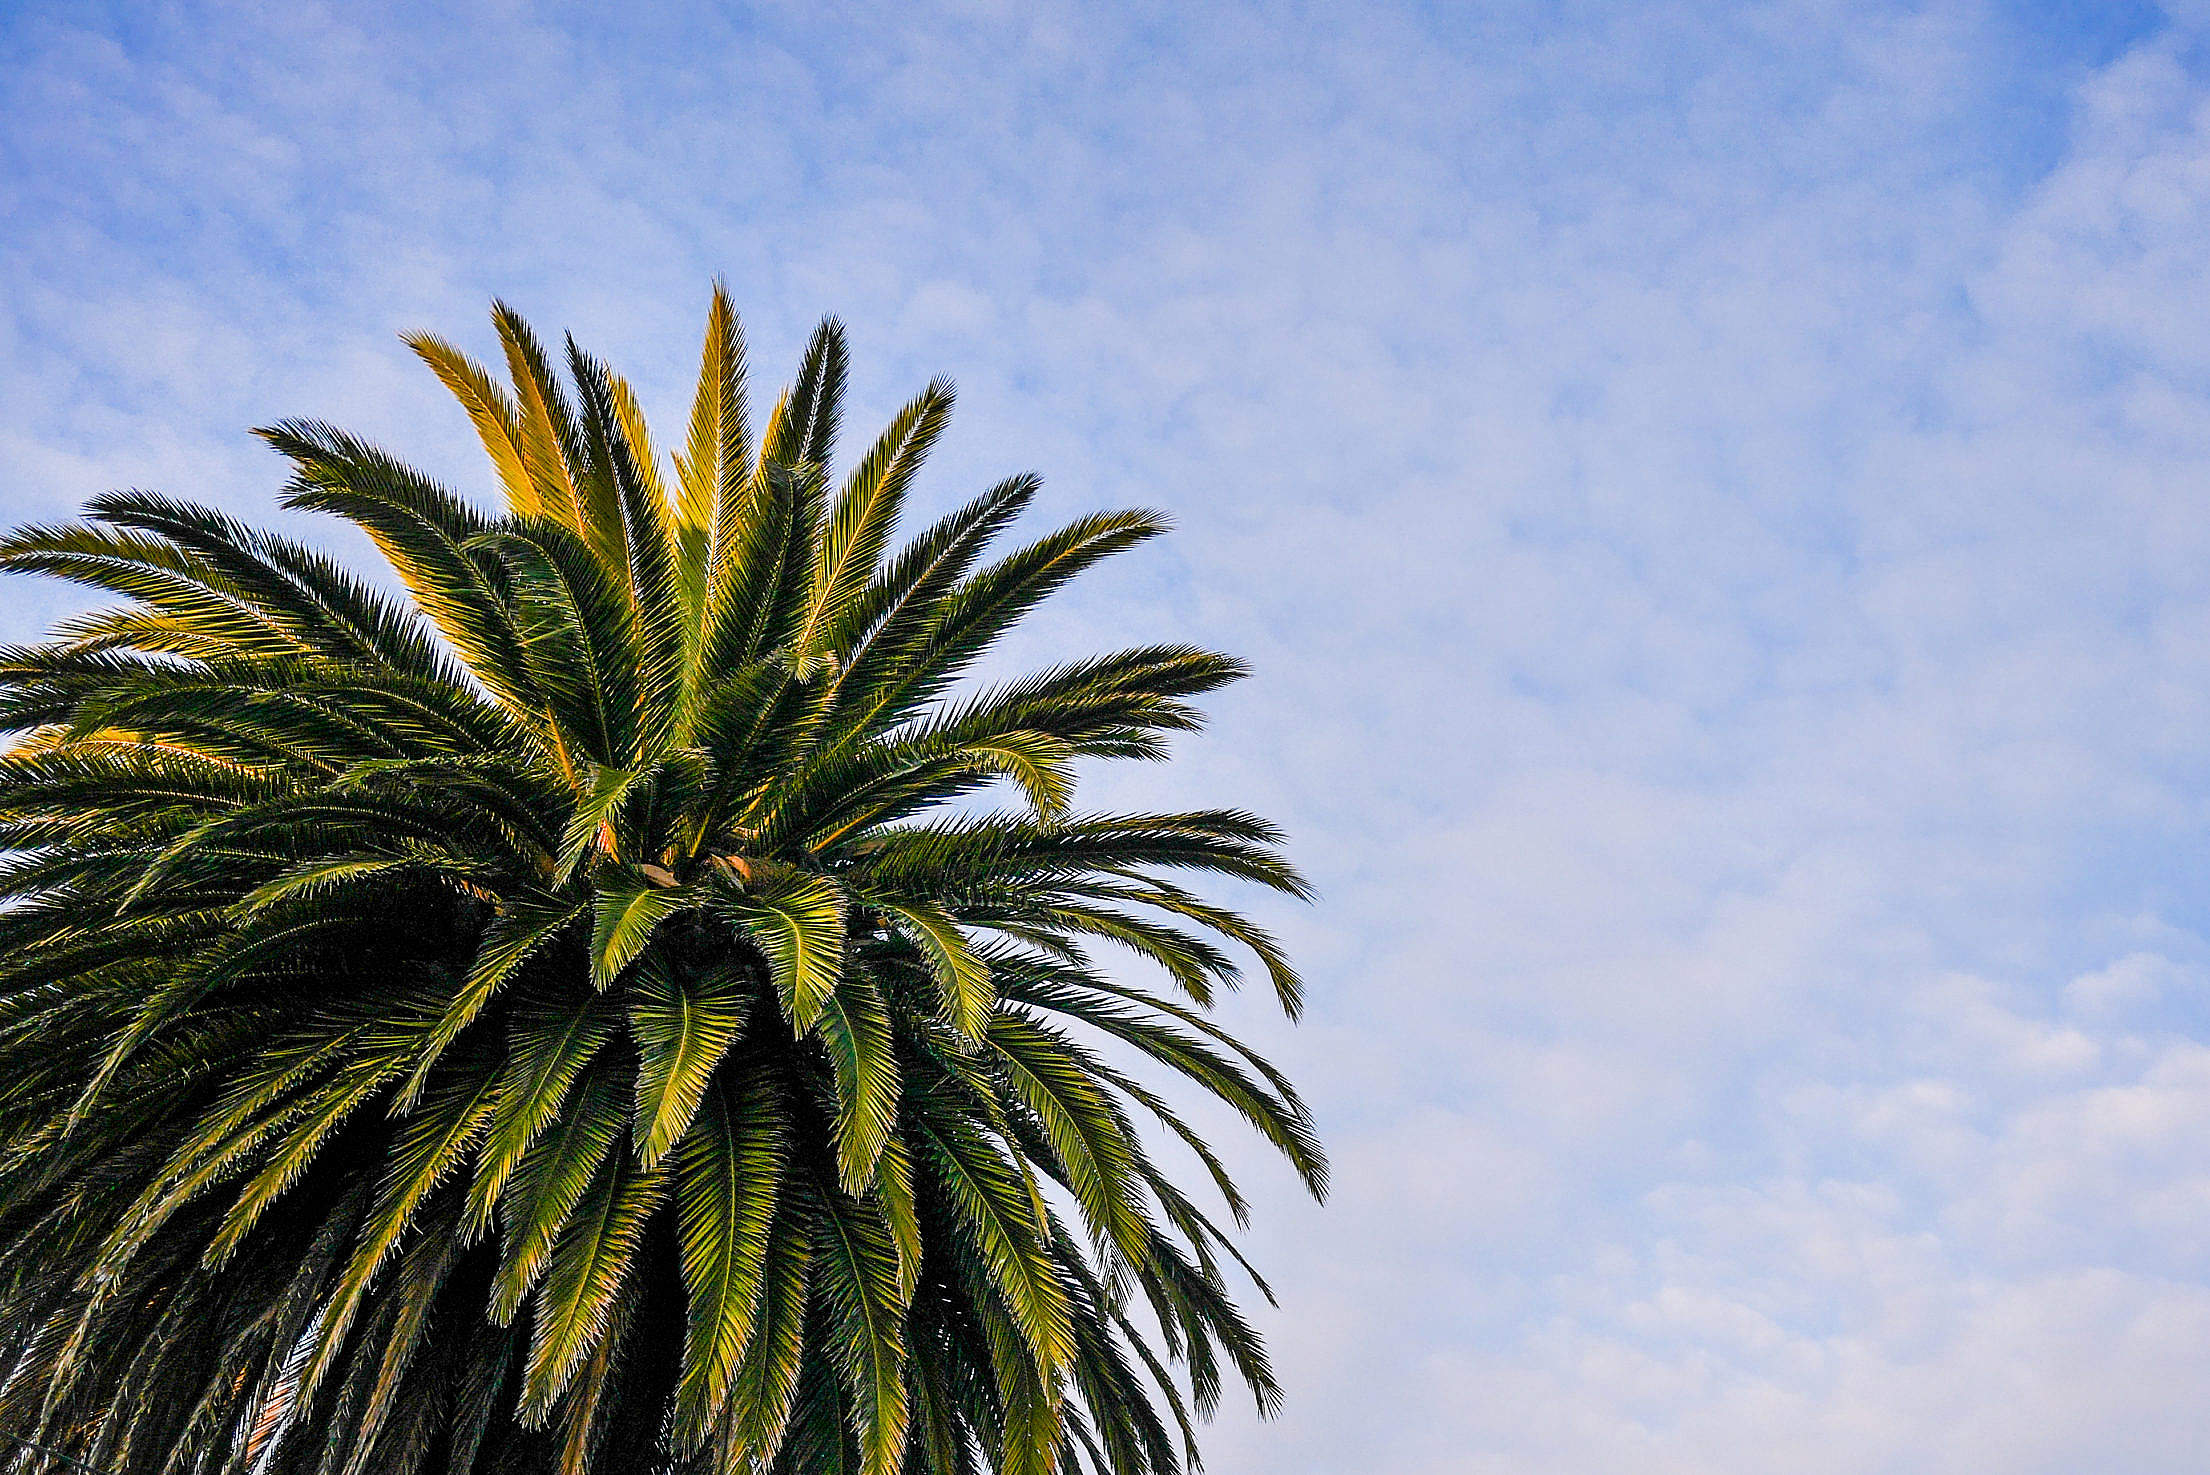 Beach Palm Tree with Cloudy Sky Free Stock Photo